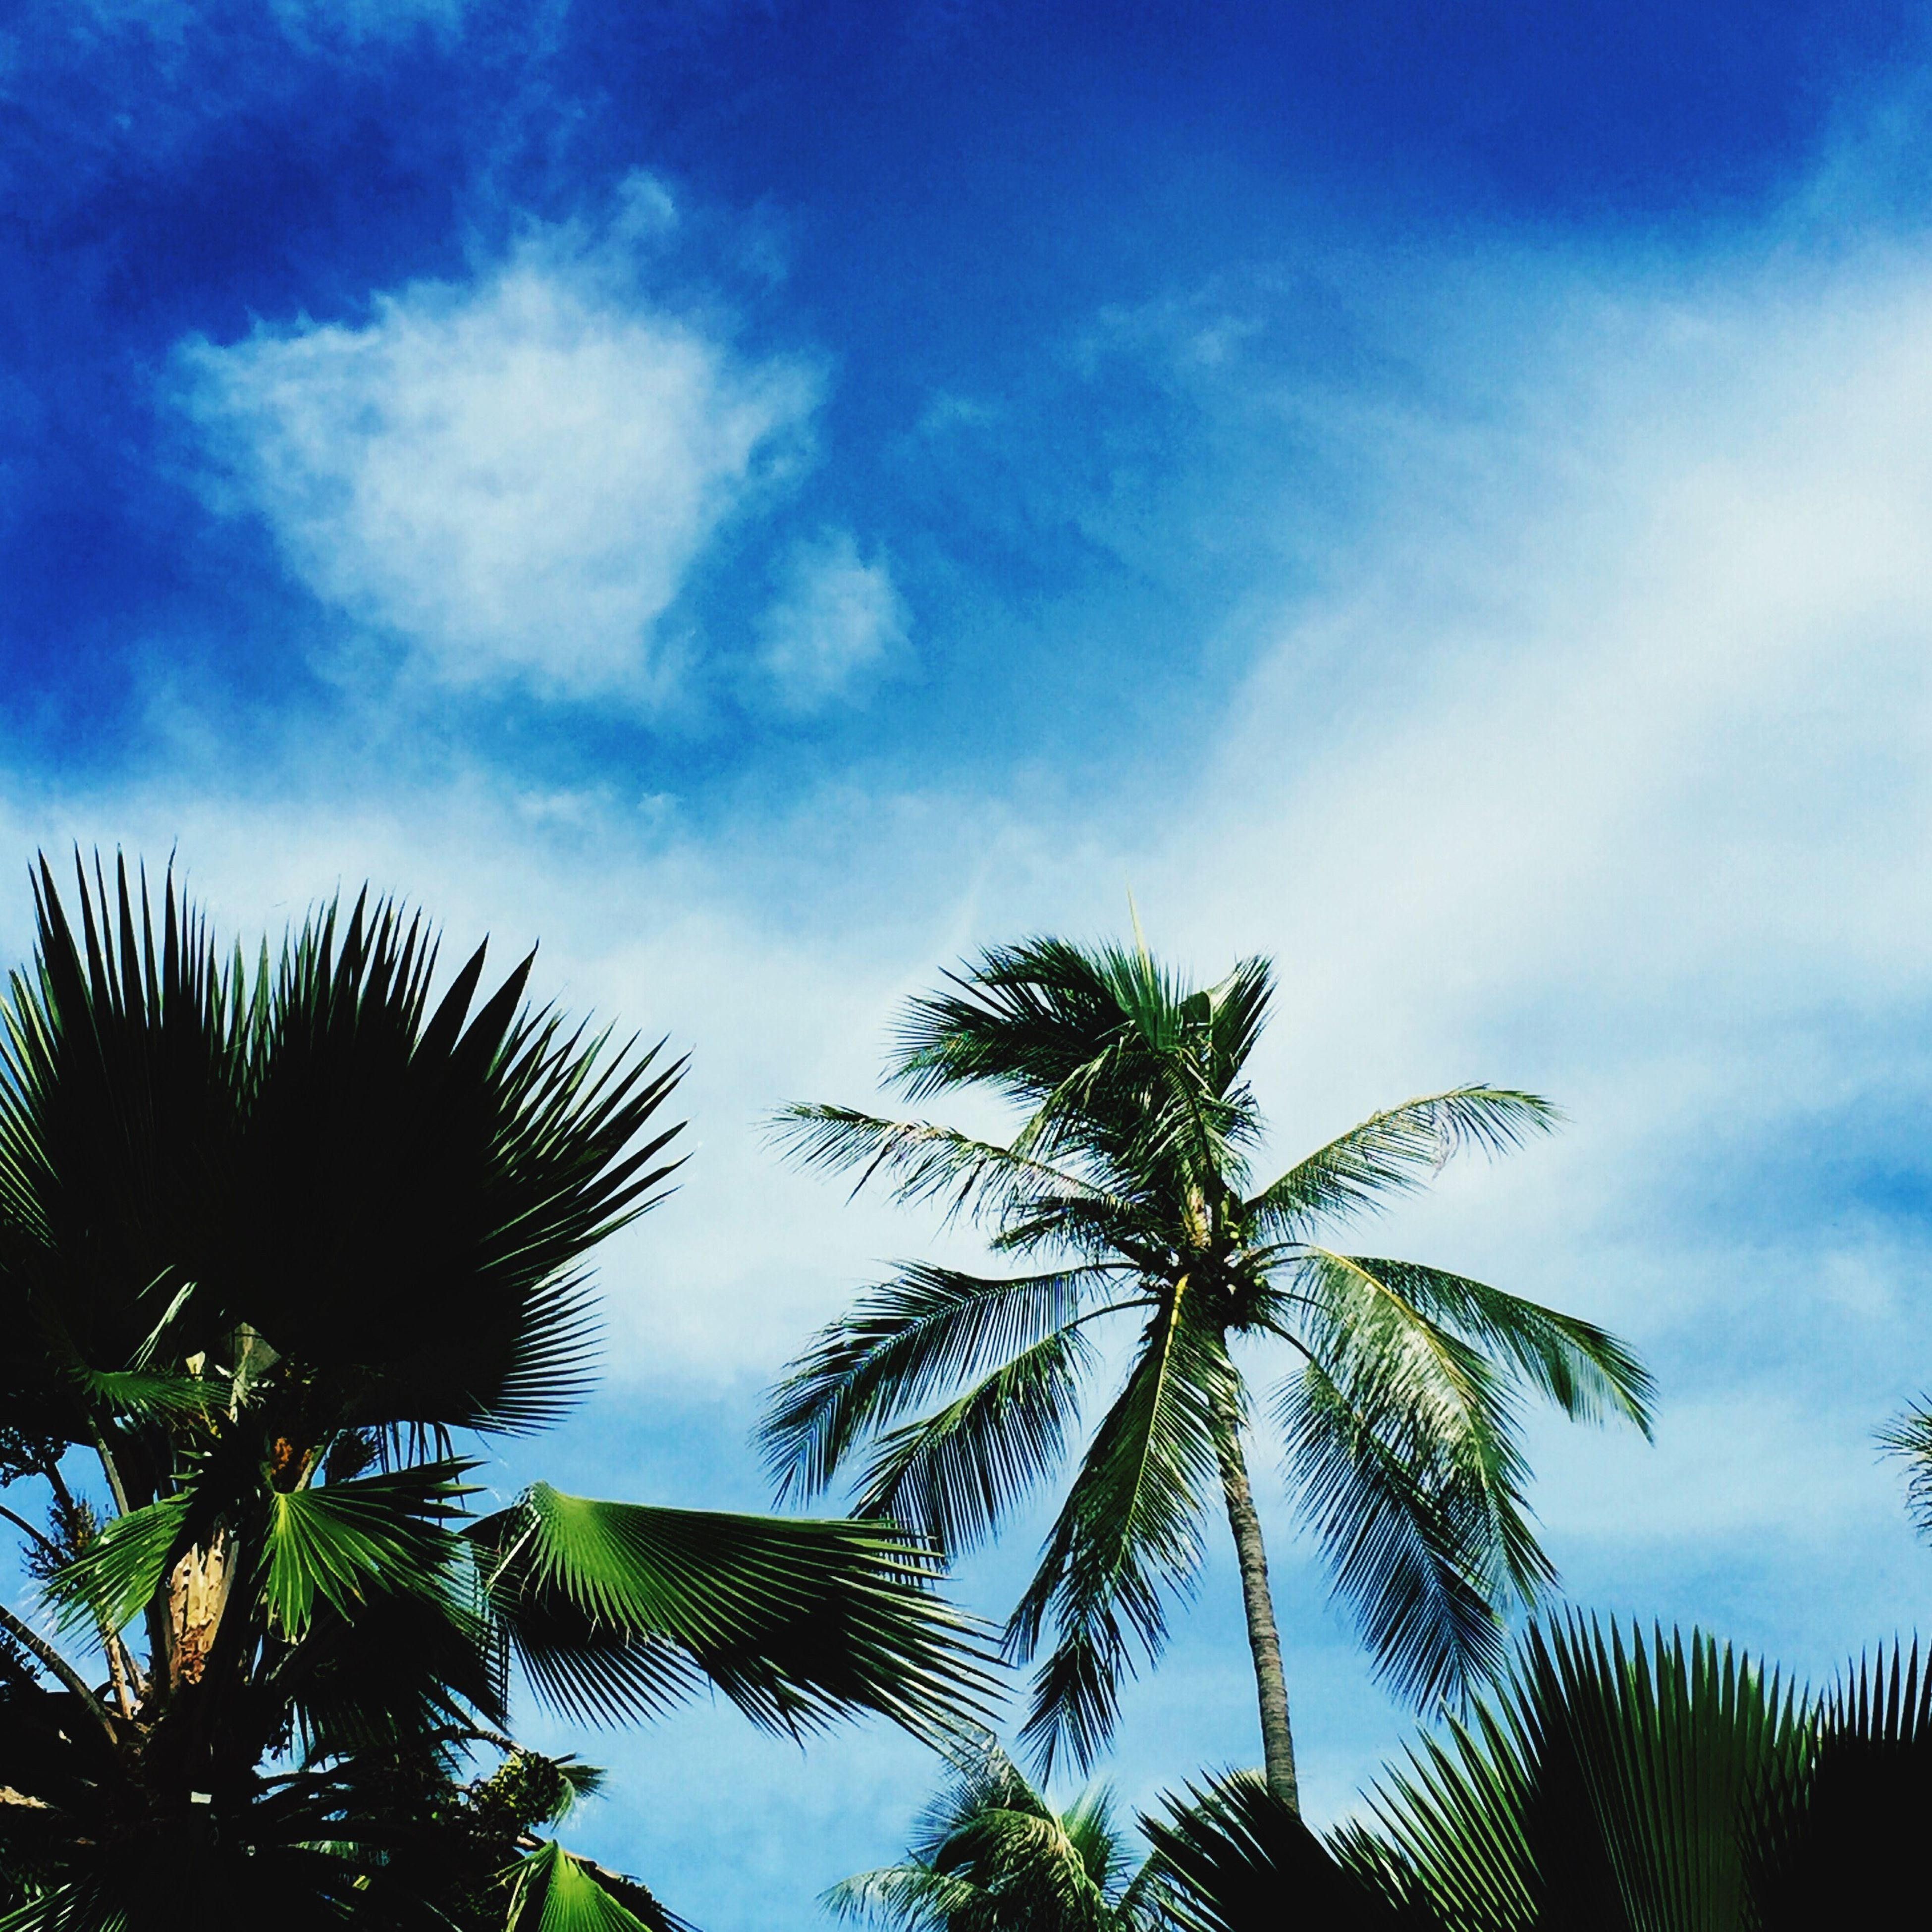 low angle view, palm tree, tree, sky, blue, growth, cloud - sky, tranquility, nature, beauty in nature, cloud, scenics, silhouette, branch, tranquil scene, outdoors, day, cloudy, green color, no people